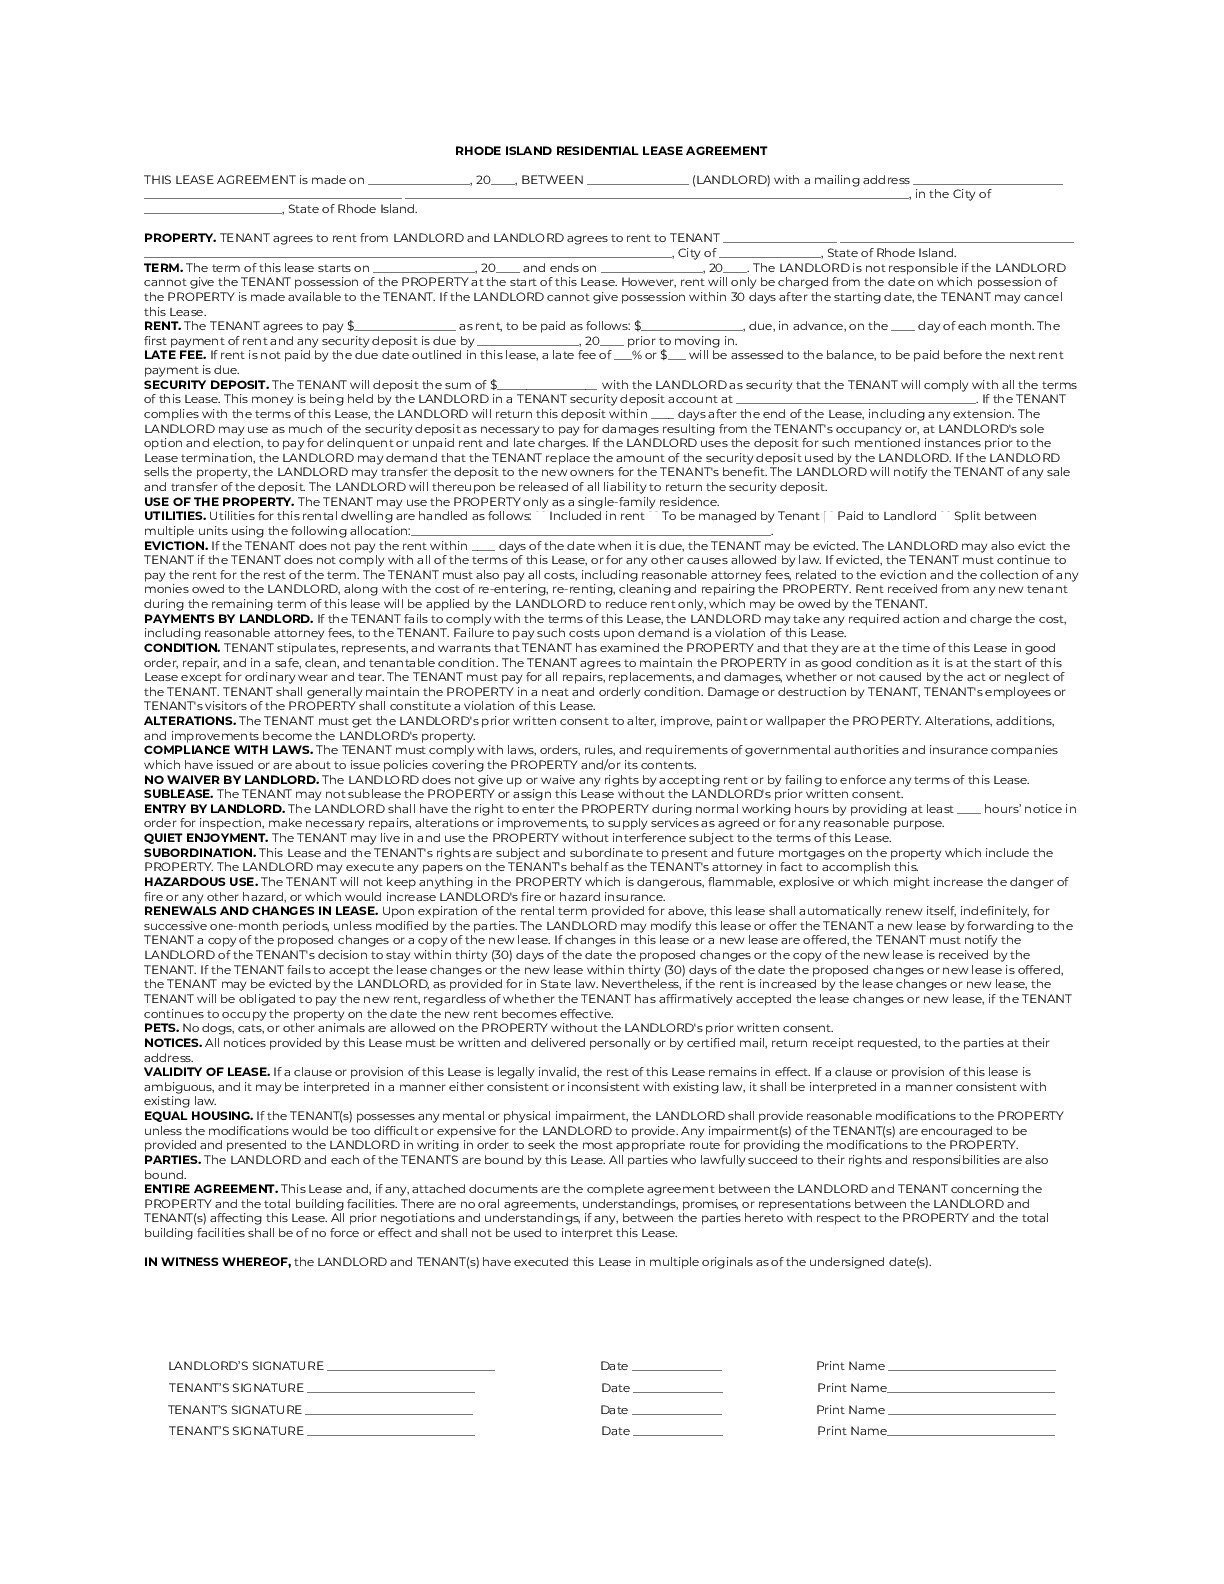 Rhode Island Simple Residential Lease Agreement Template sample